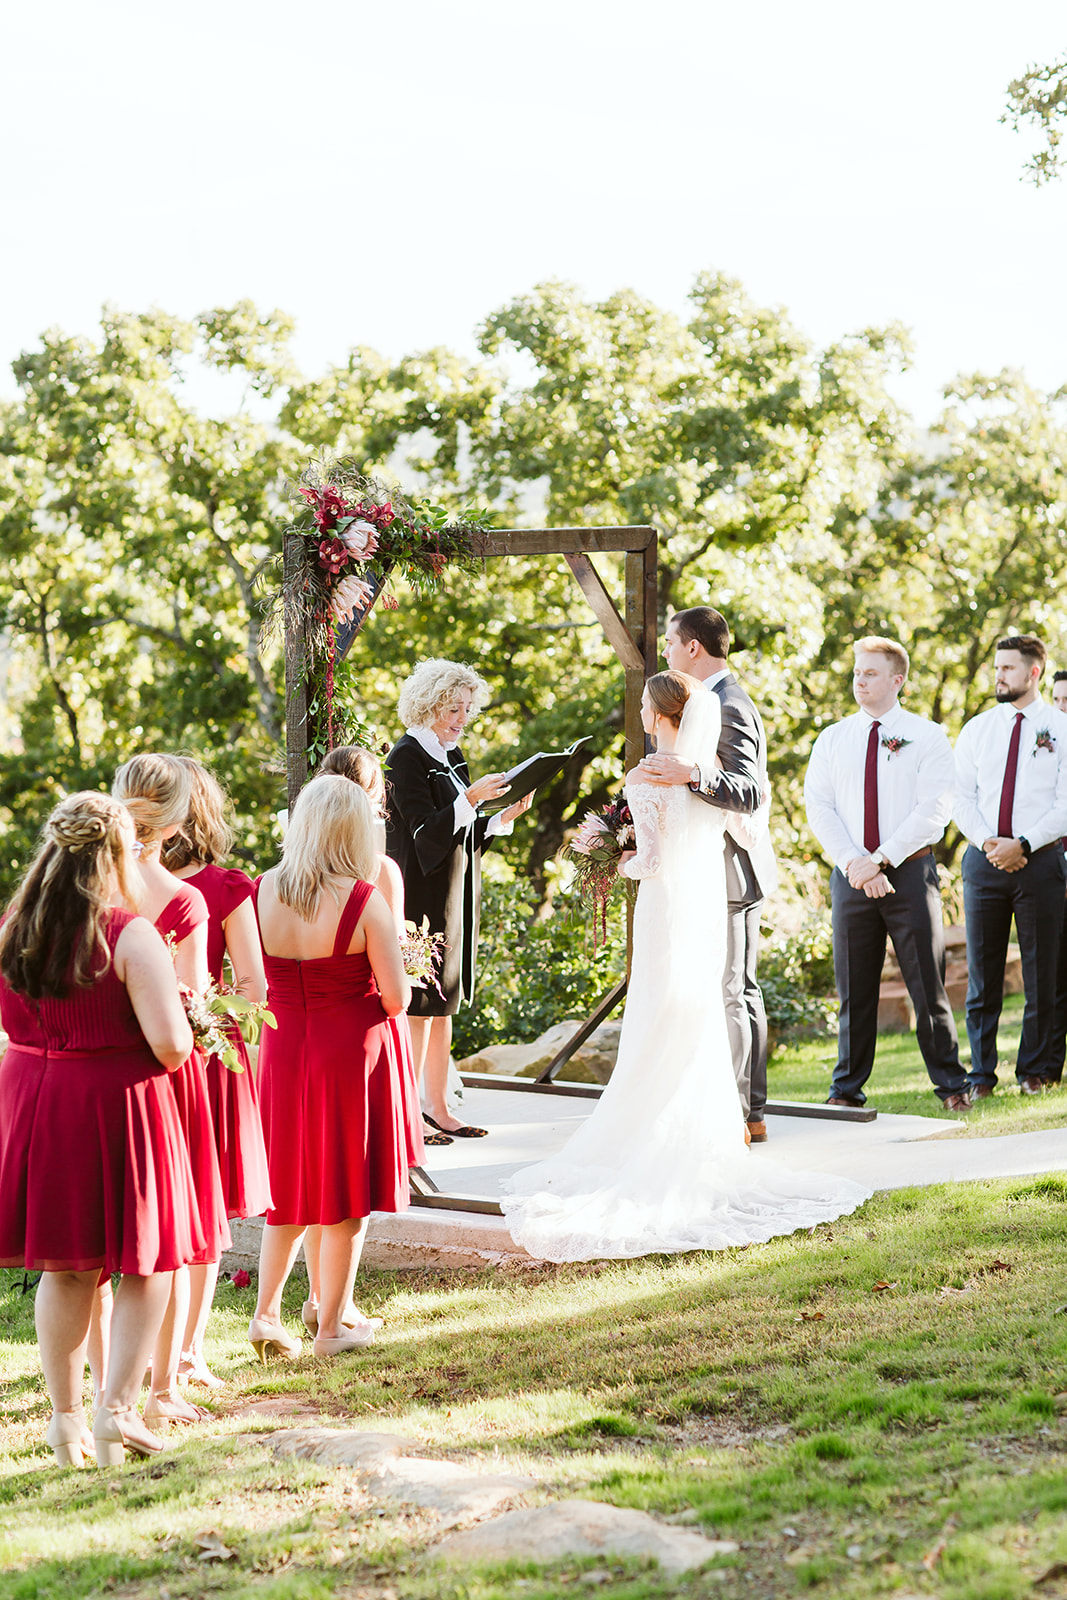 Tulsa Wedding Venue White Barn Dream Point Ranch 56.jpg